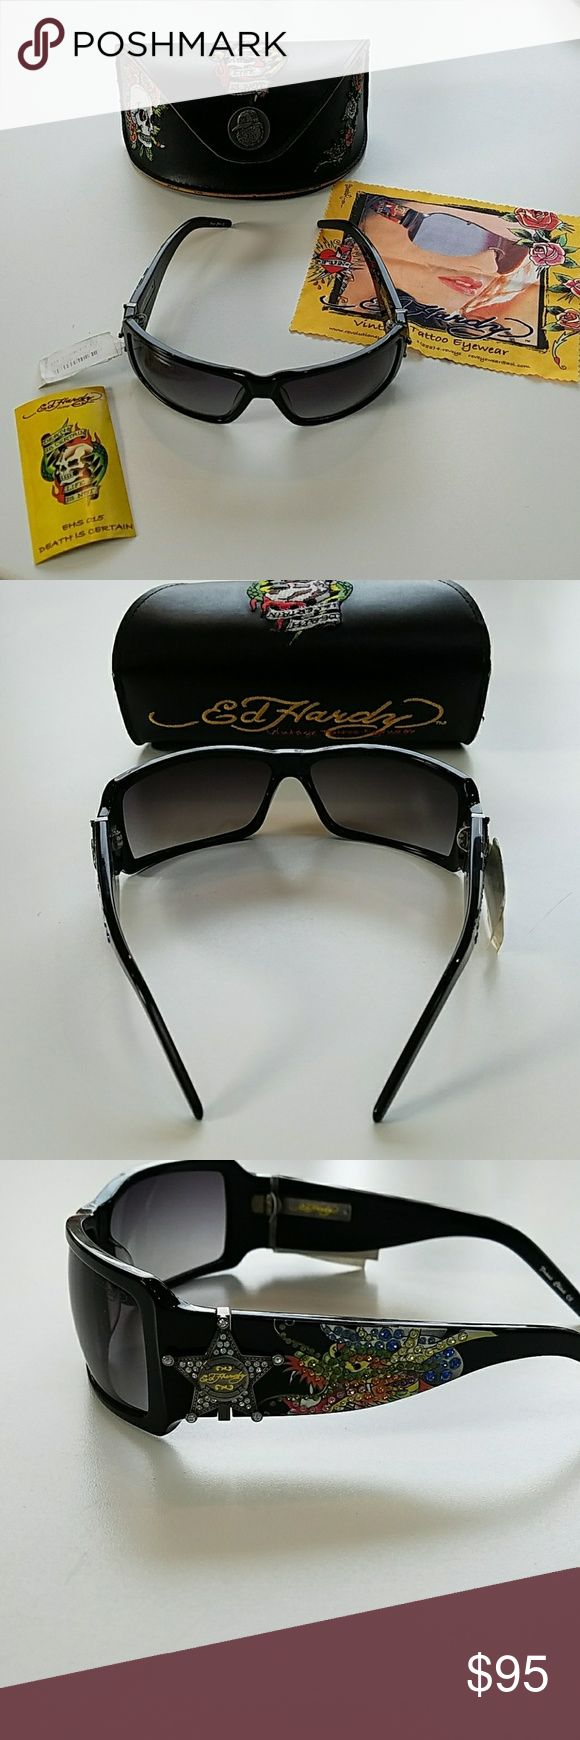 Ed Hardy Tattoo Eyewear Sunglasses Ed Hardy Tattoo Eyewear Sunglasses. Nwt! In perfect new condition. Includes beautiful Ed Hardy sunglass case, extra Swarovski Crystals and glass cleaner cloth. Ed Hardy Accessories Glasses